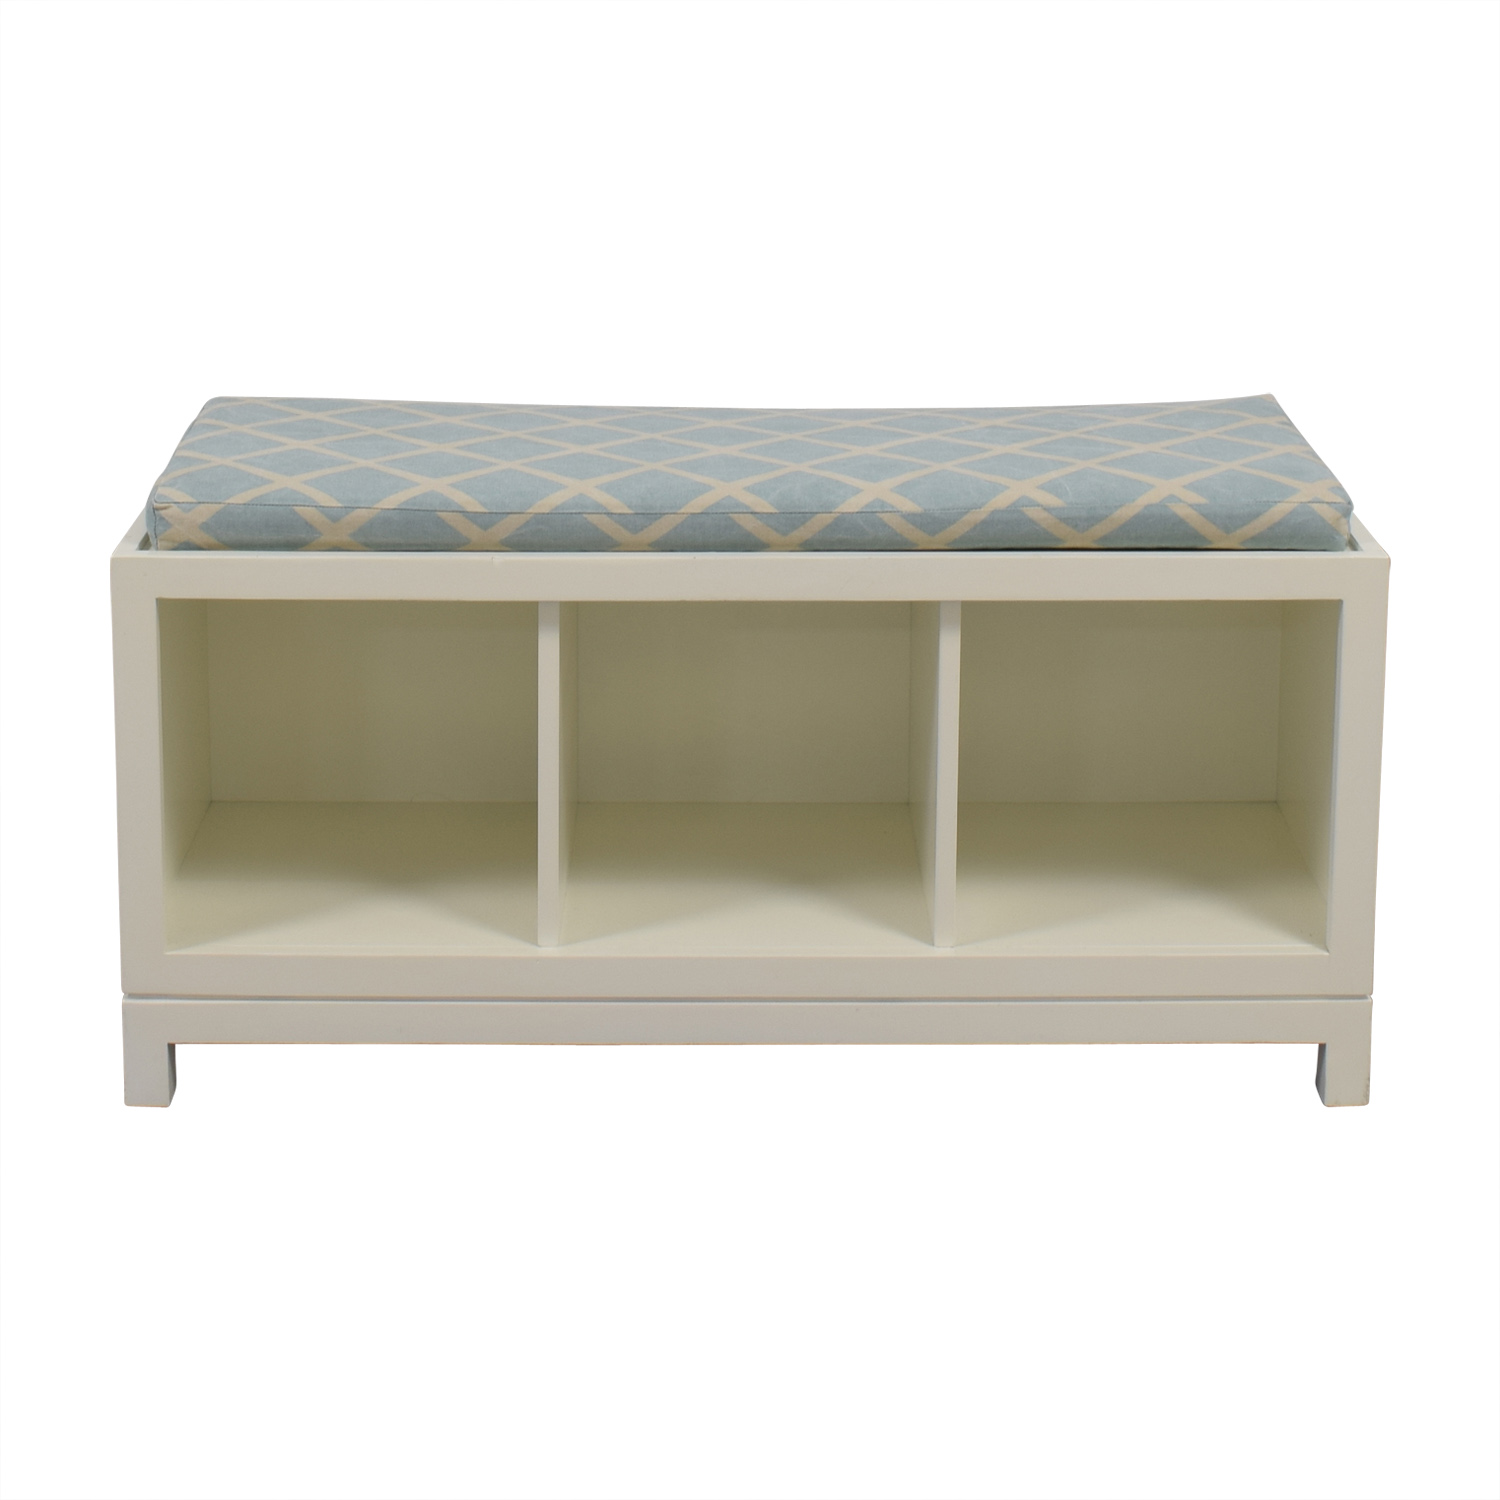 Serena and Lily White Storage Bench Serena and Lily